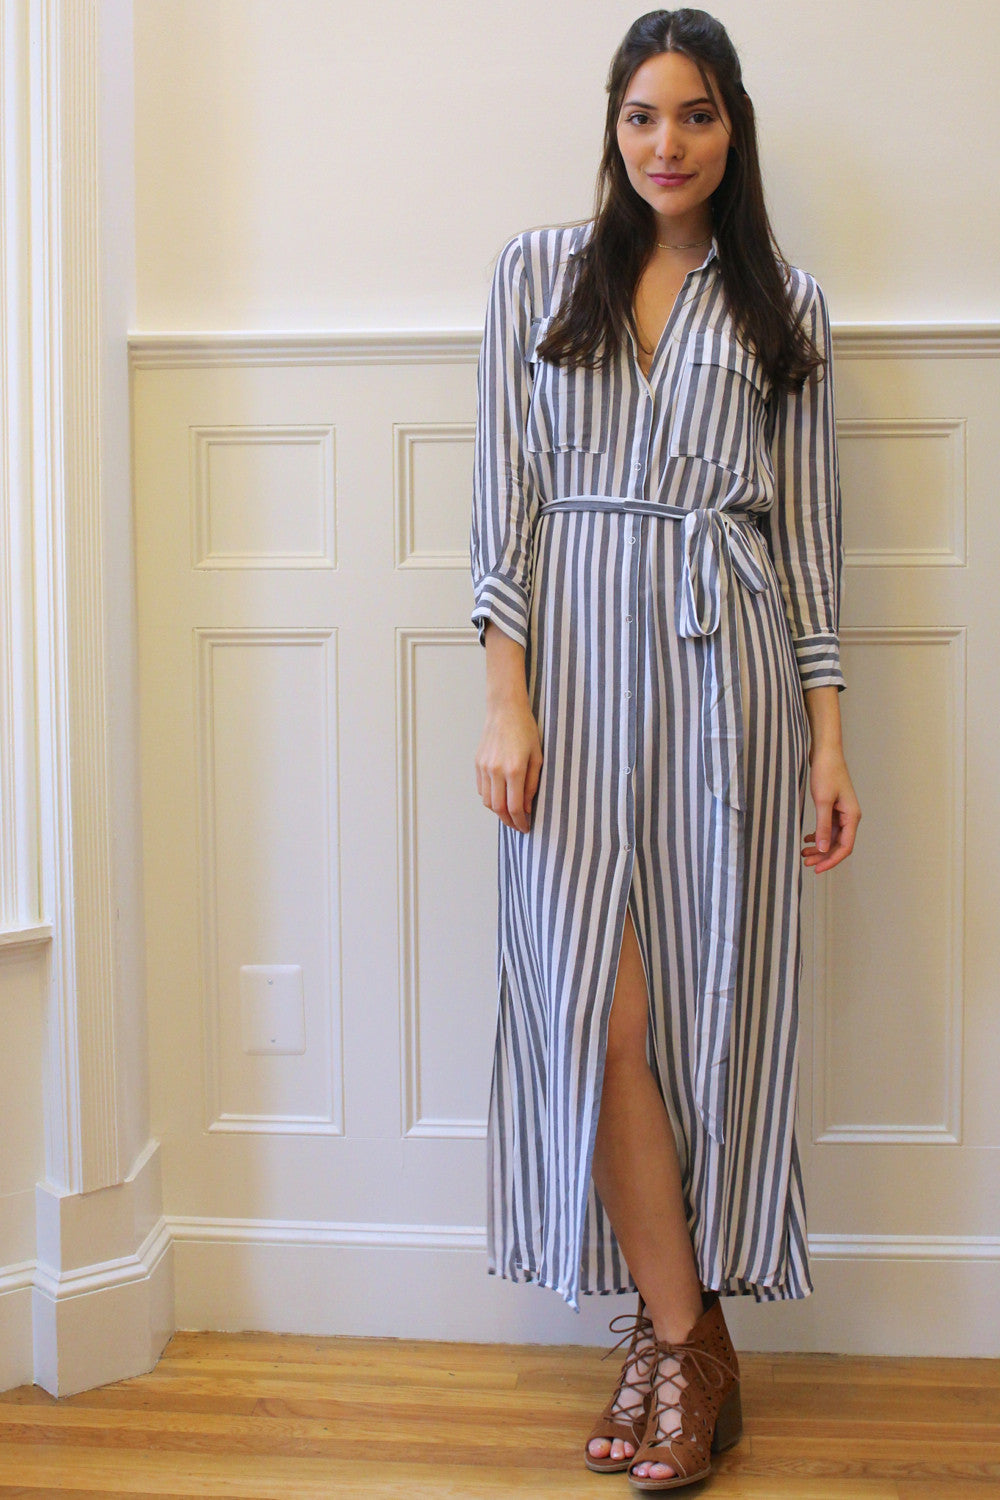 Cyprus Striped Midi Shirt Dress - Ivory/Gray